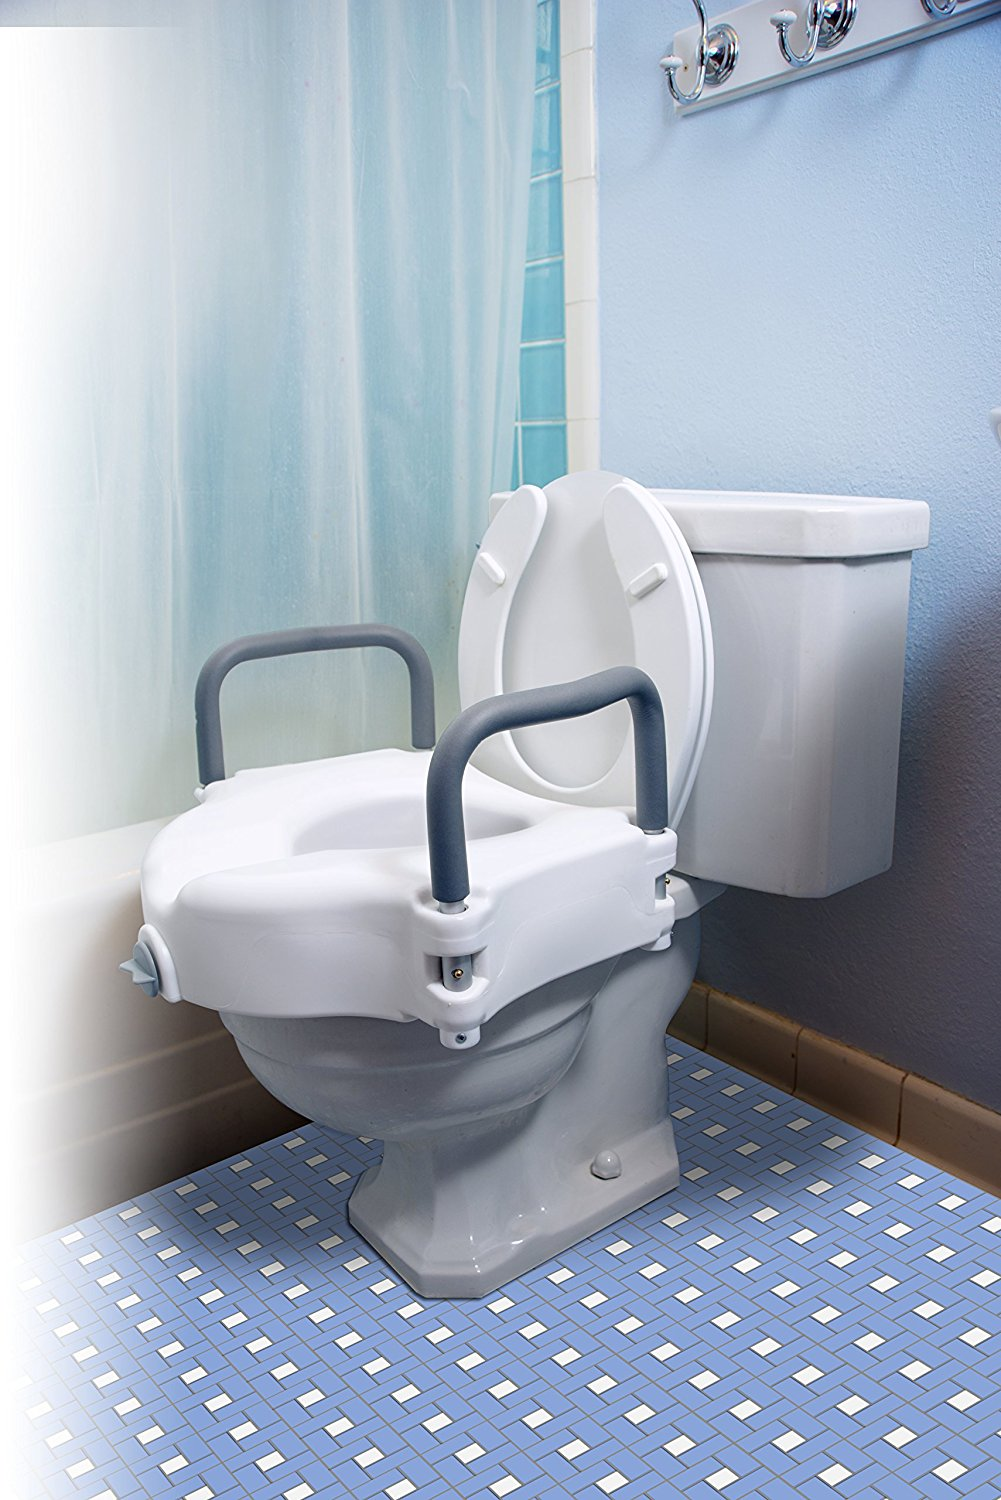 Toilet Seat Covers Home Depot | Cushioned Toilet Seats | Elongated Padded Toilet Seats